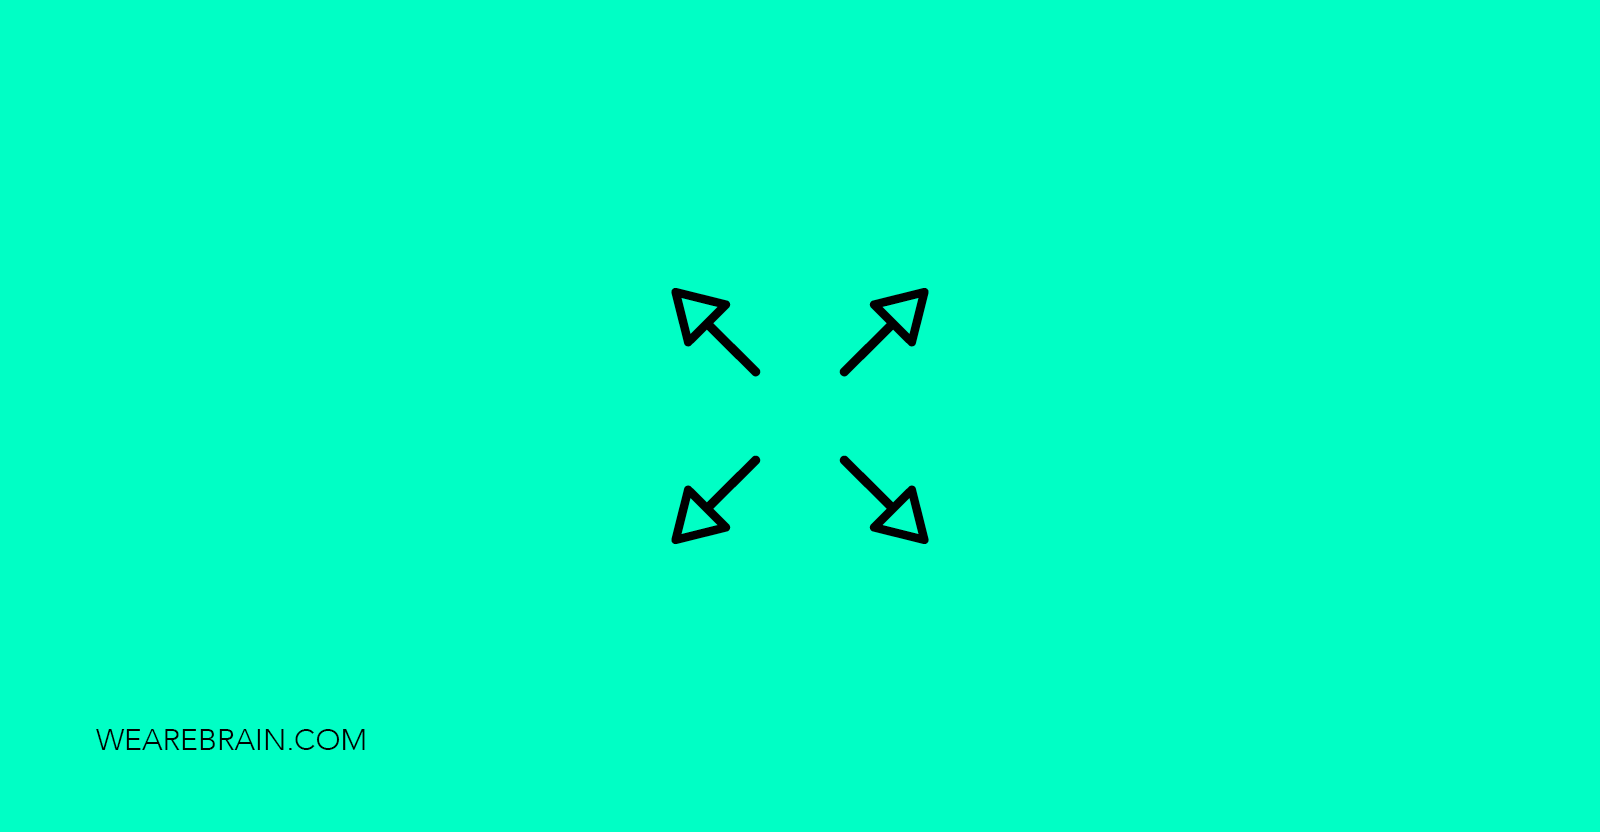 icon of four arrows pointing outwards